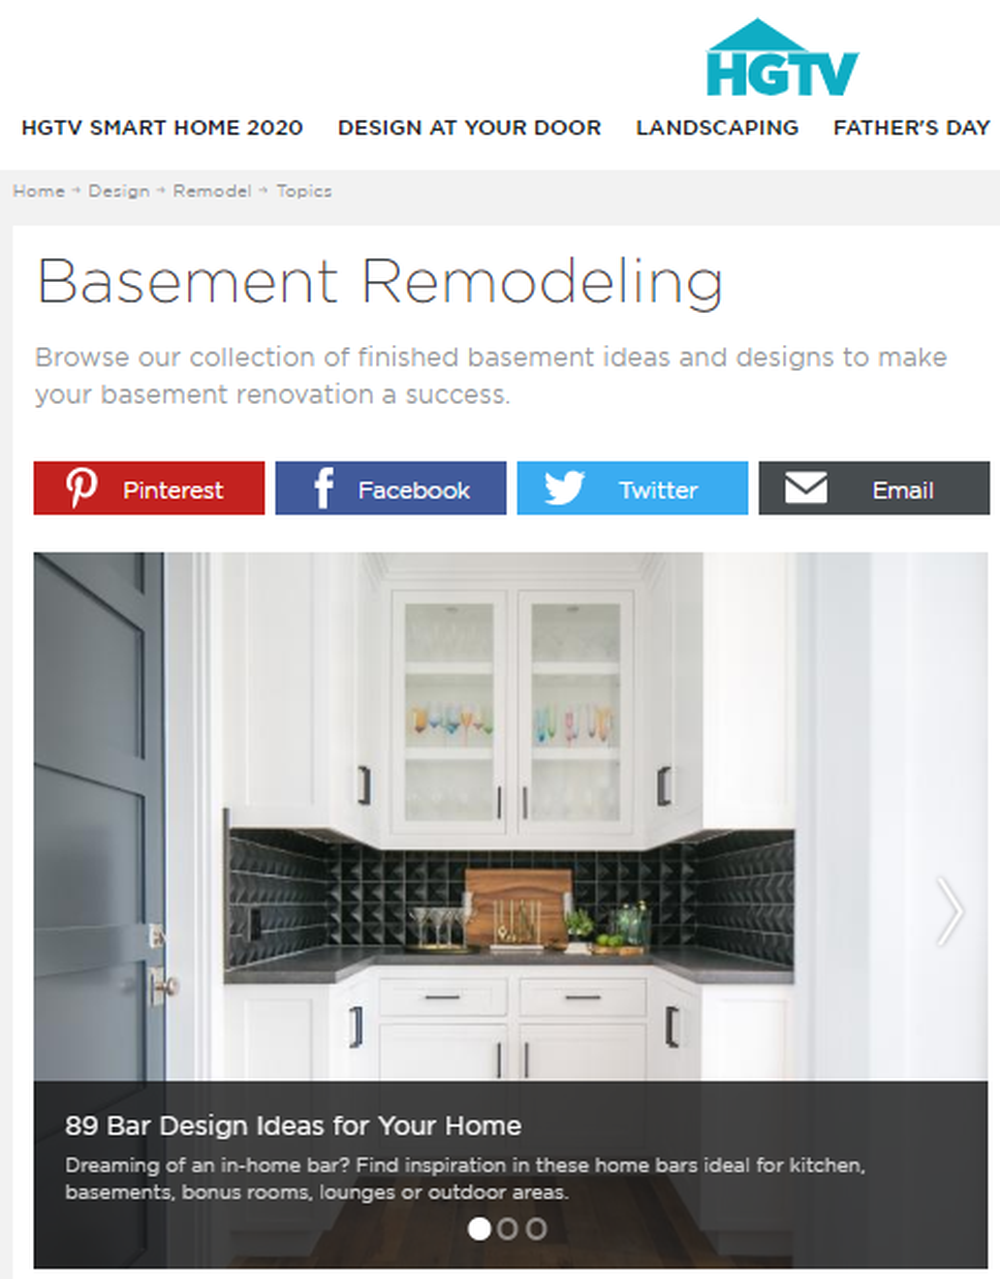 Basement_Remodeling_Ideas_HGTV.png